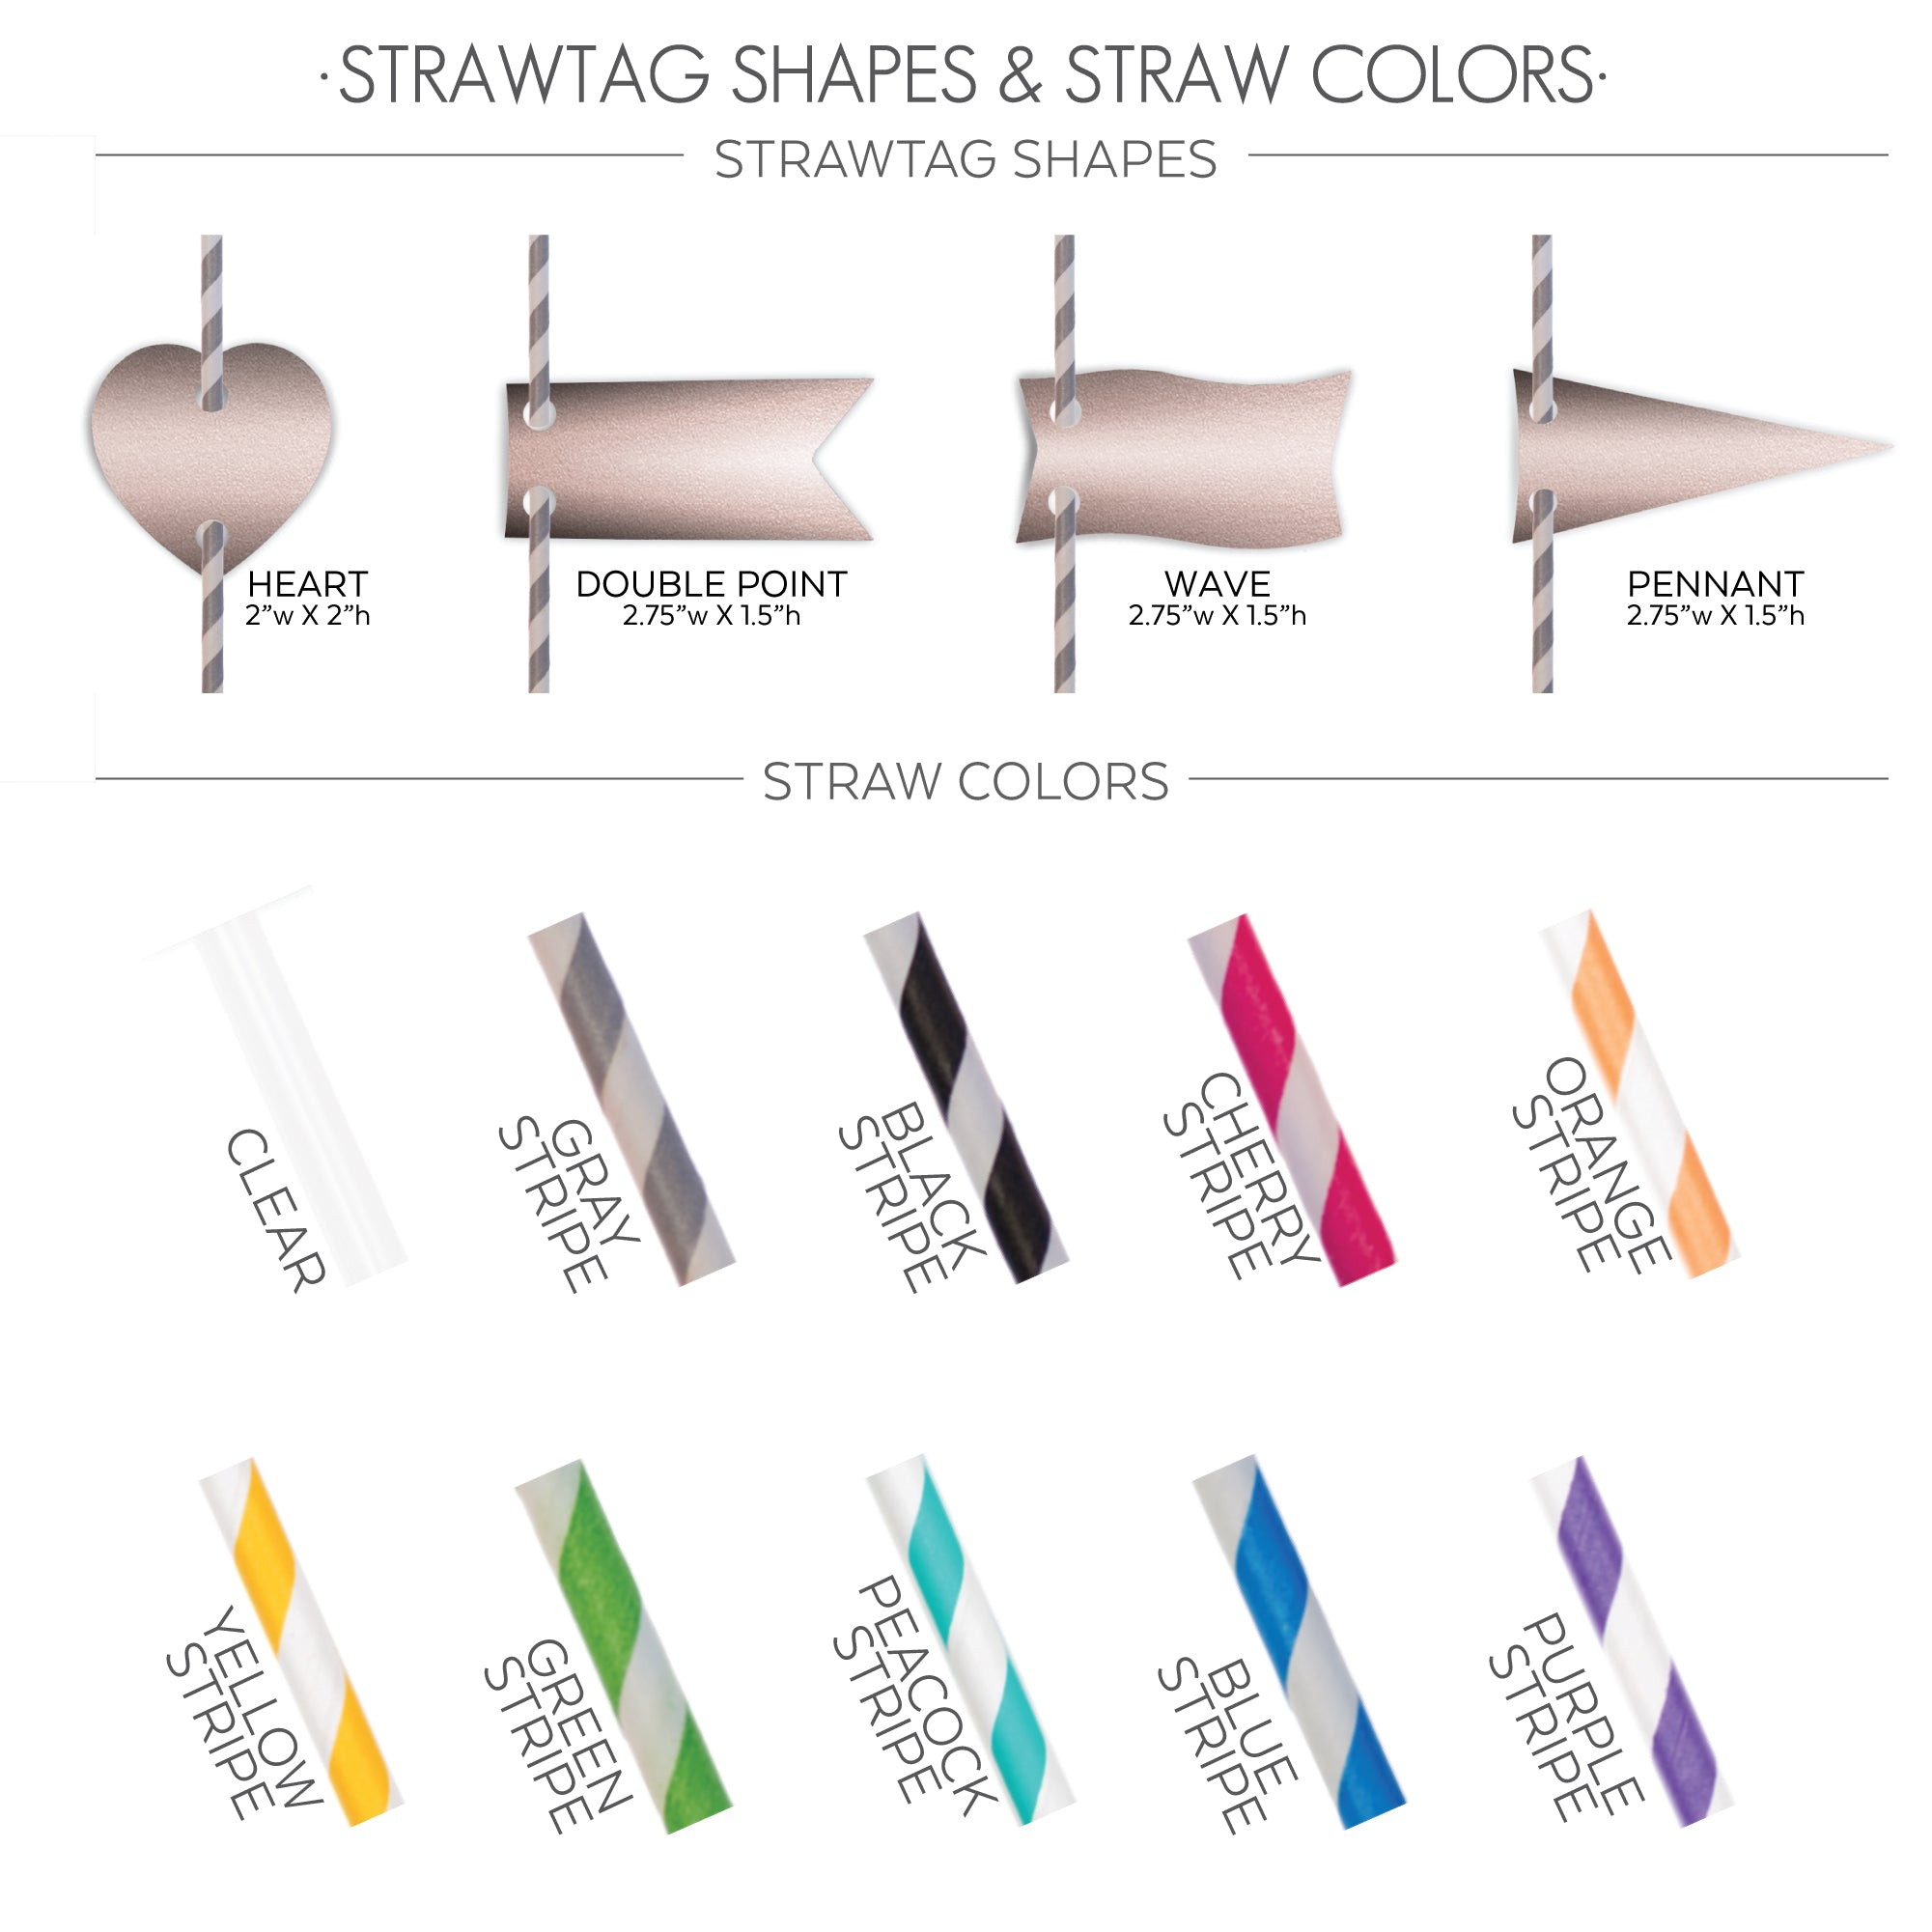 STRAWTAG SHAPES COLORS